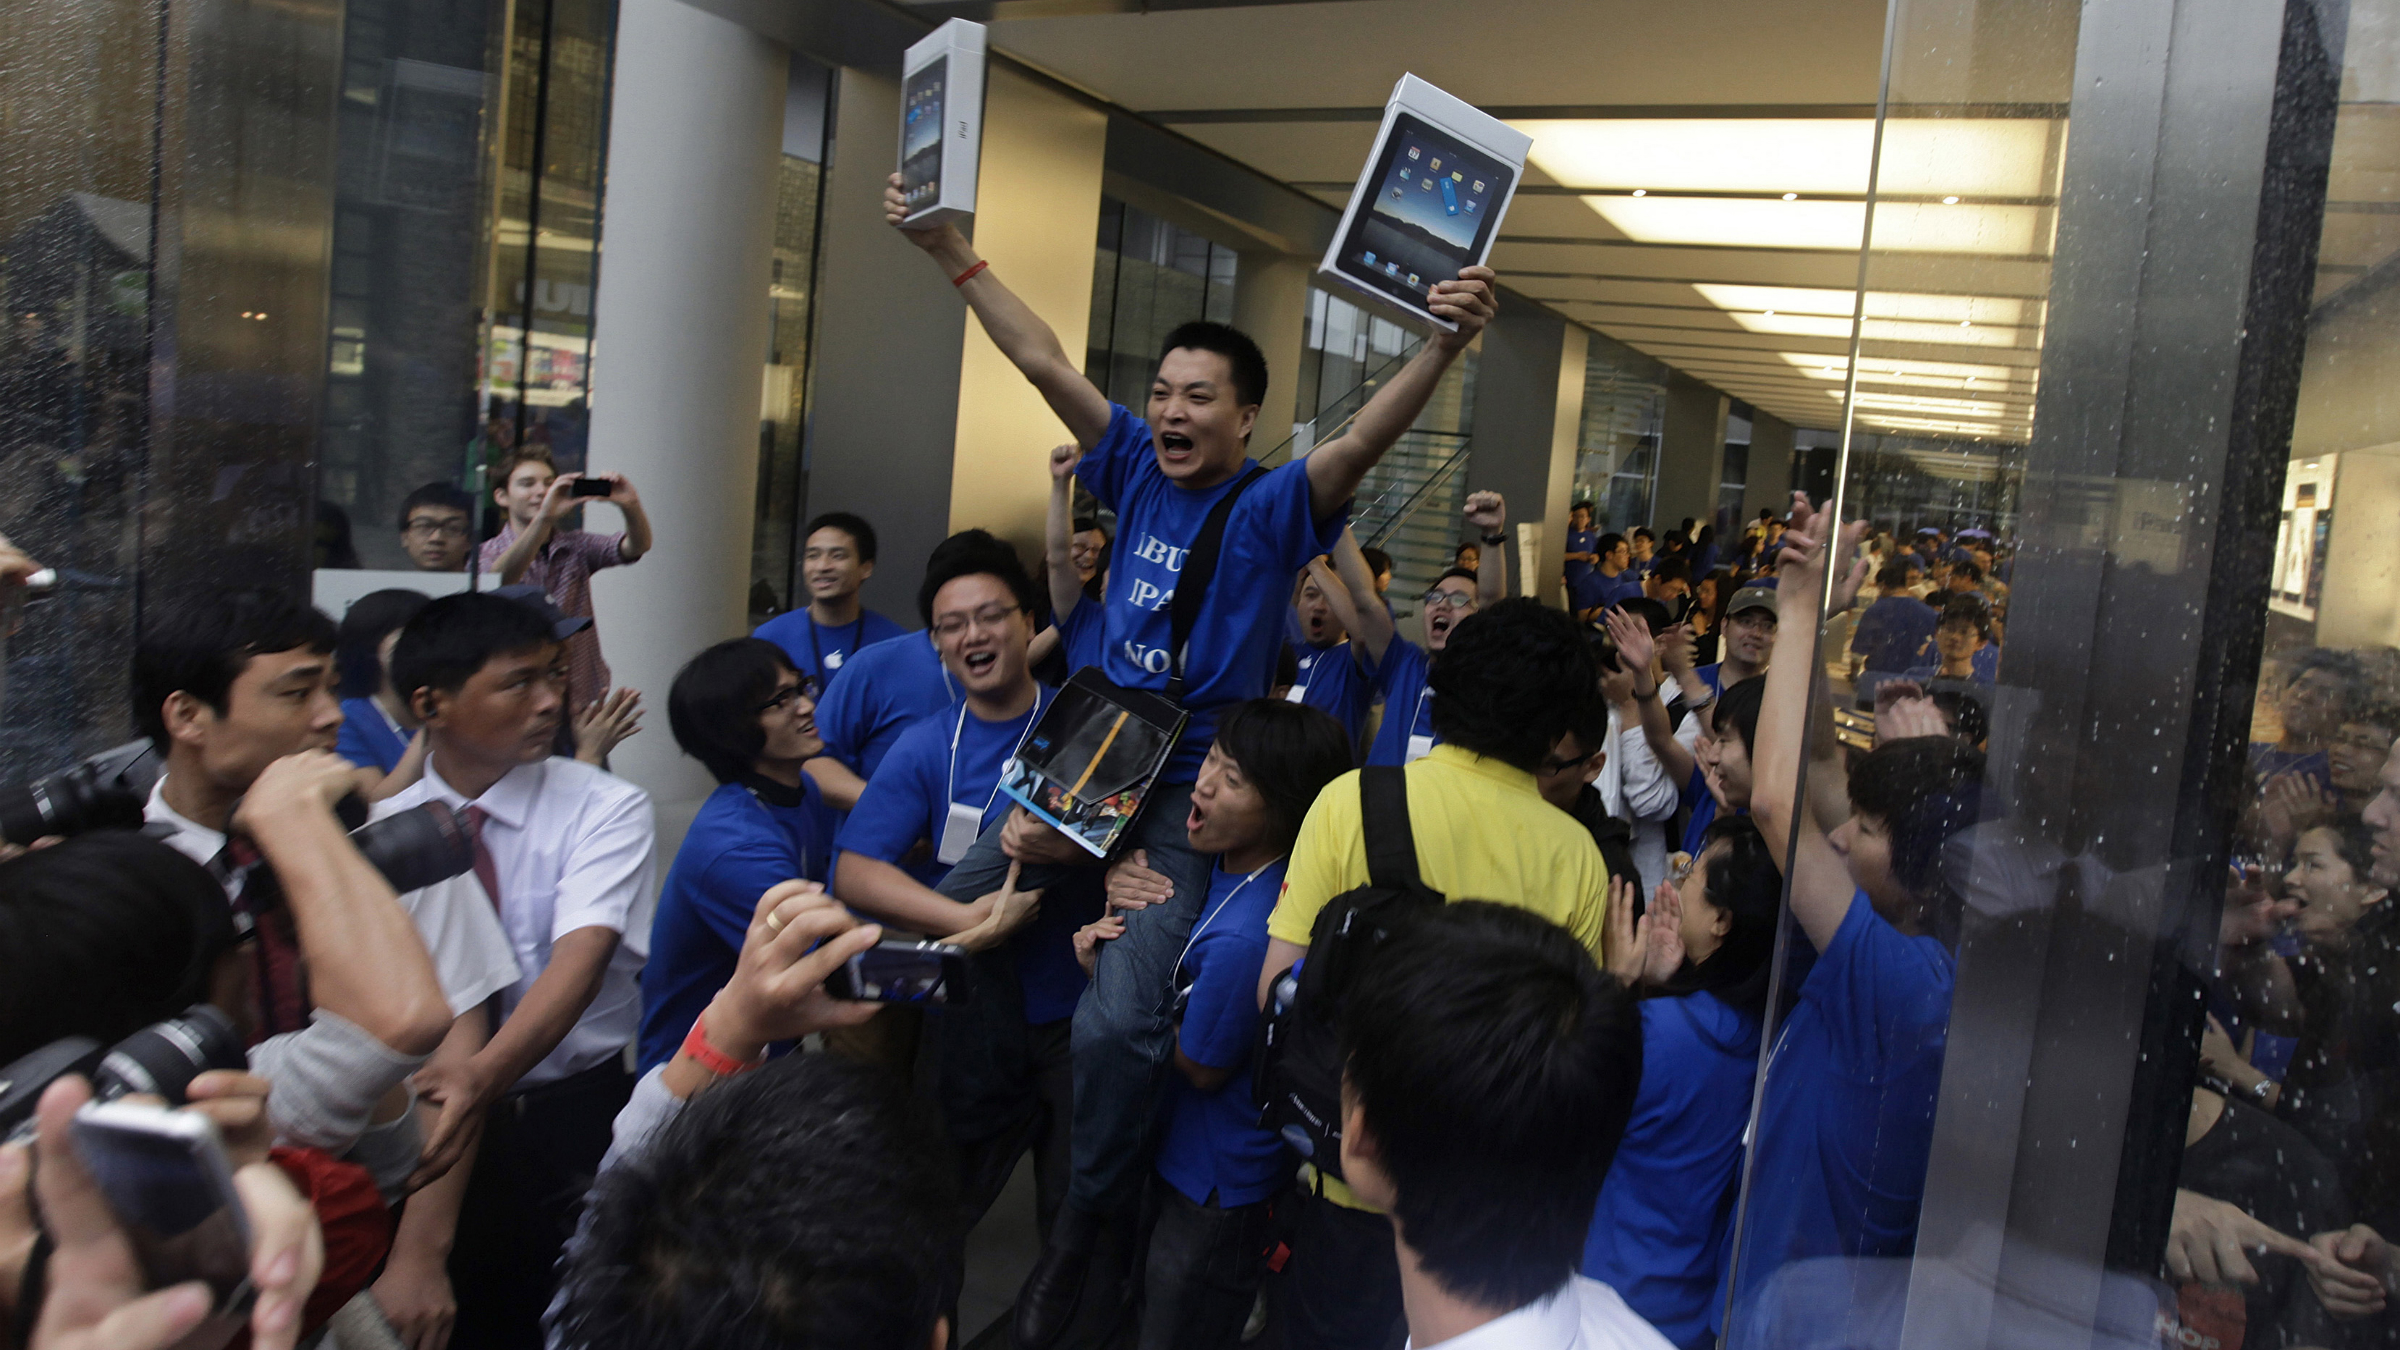 Customer Han Ziwen holds up his iPads at an Apple flagship store in Beijing, September 17, 2010. Han is one of the first customers to officially buy an iPad in Chinese mainland after queueing more than 60 hours. Apple officially launches its era-defining product in the Chinese mainland on Friday. REUTERS/Petar Kujundzic